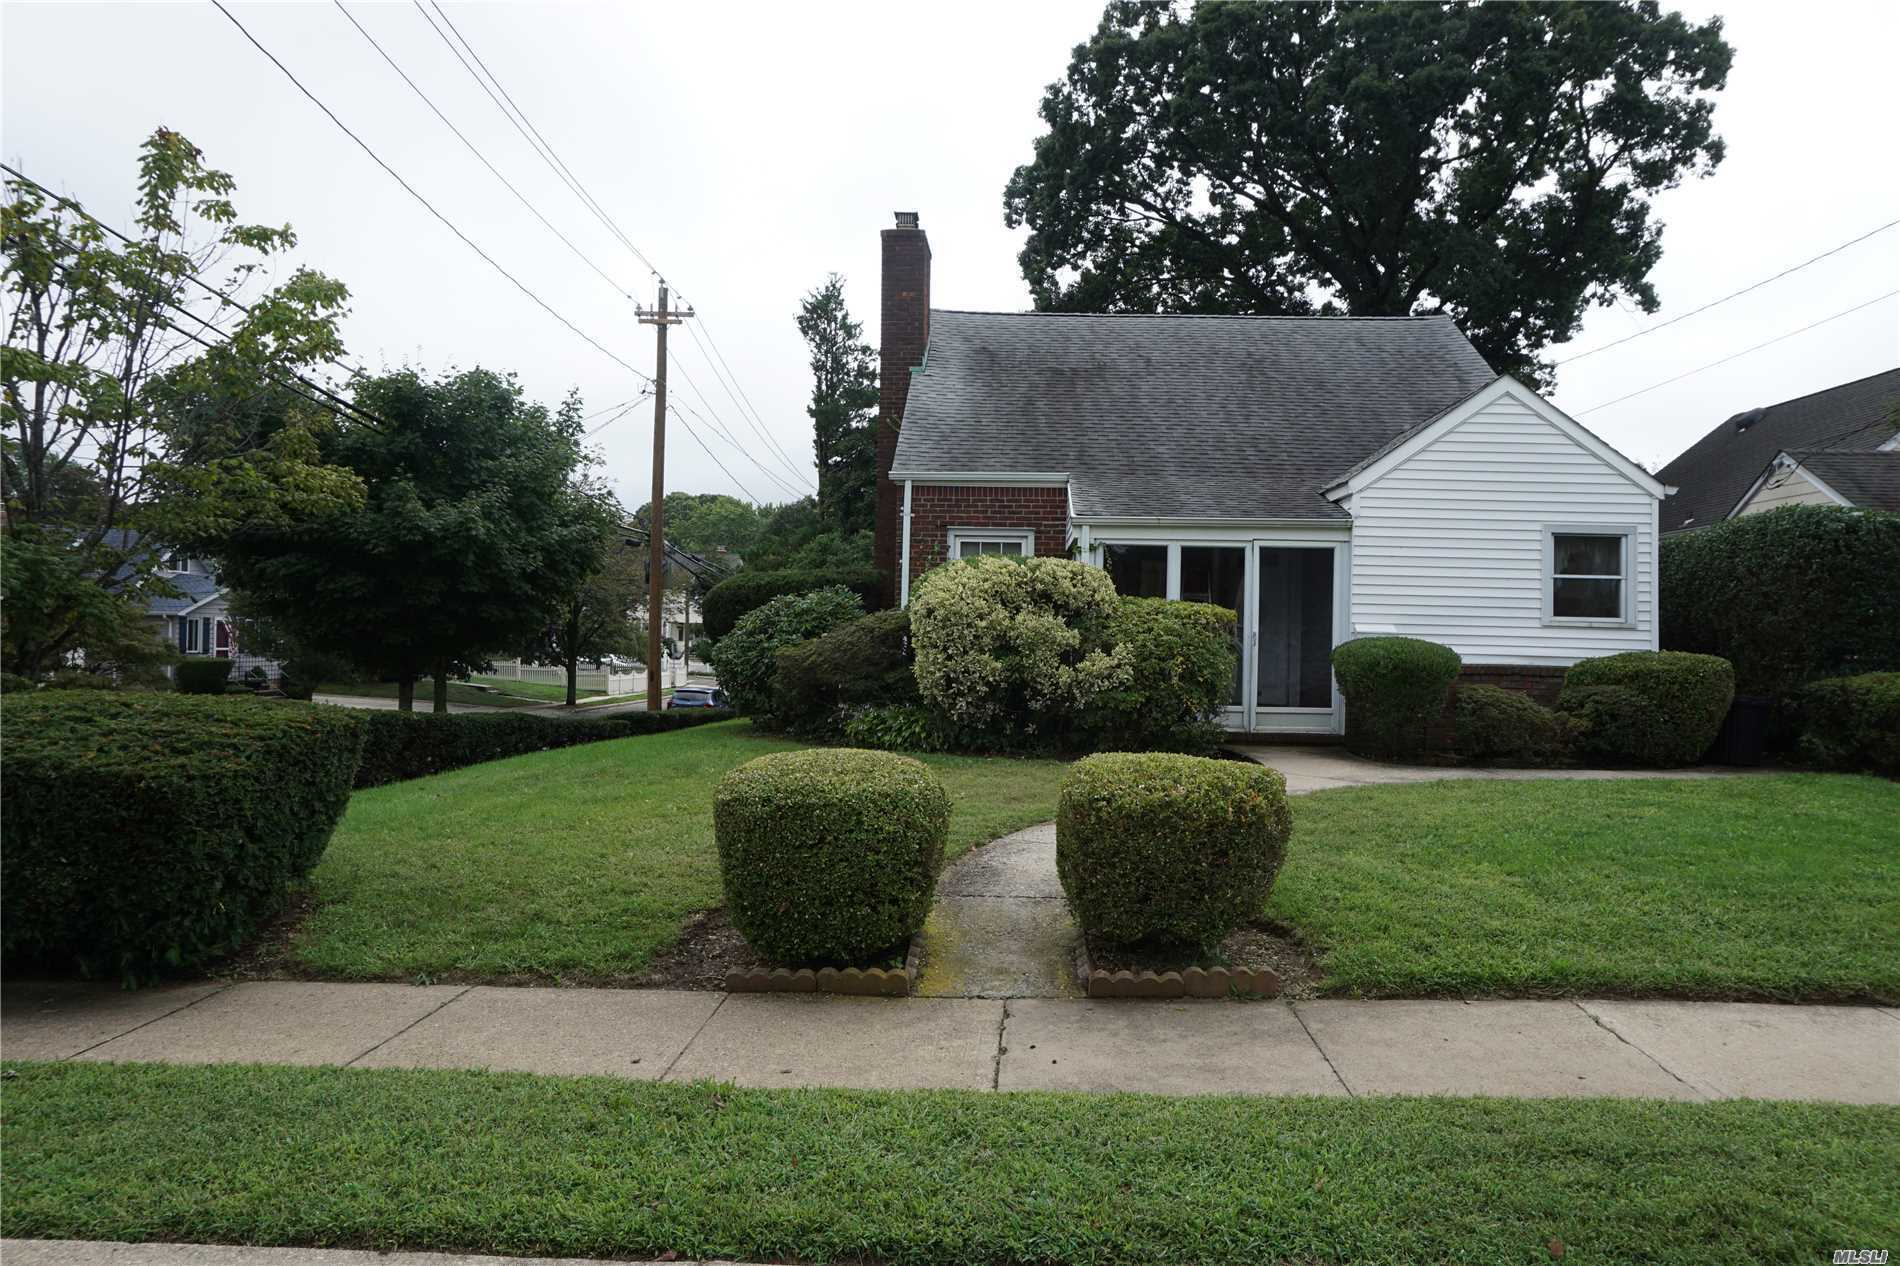 Renovate This Home Into Your Dream Home!Great Location/Quiet Residential Area, 4 Br, 1Fbth Cape, Lovely Entry Foyer, Lr W/Wood Burn. Frplc, Kitchen W/Gas Cooking, Fdr, Wood Flrs Thruout!, Mbr, Br, Fbth-2nd Fl.-Sitting Area, Br, Br W/Ose To Sun Porch, Wood Flrs, Built-In Shelves Open Up To Eaves For Storage (Cubbies), Full Bsmt Part Fin., Beautiful&Lrg Yard For Entertaining So Much Potential To Make This Your Forever Home! Award Winning Plaza Elem. School, Close To Lirr & Shopping.Home Won't Last!